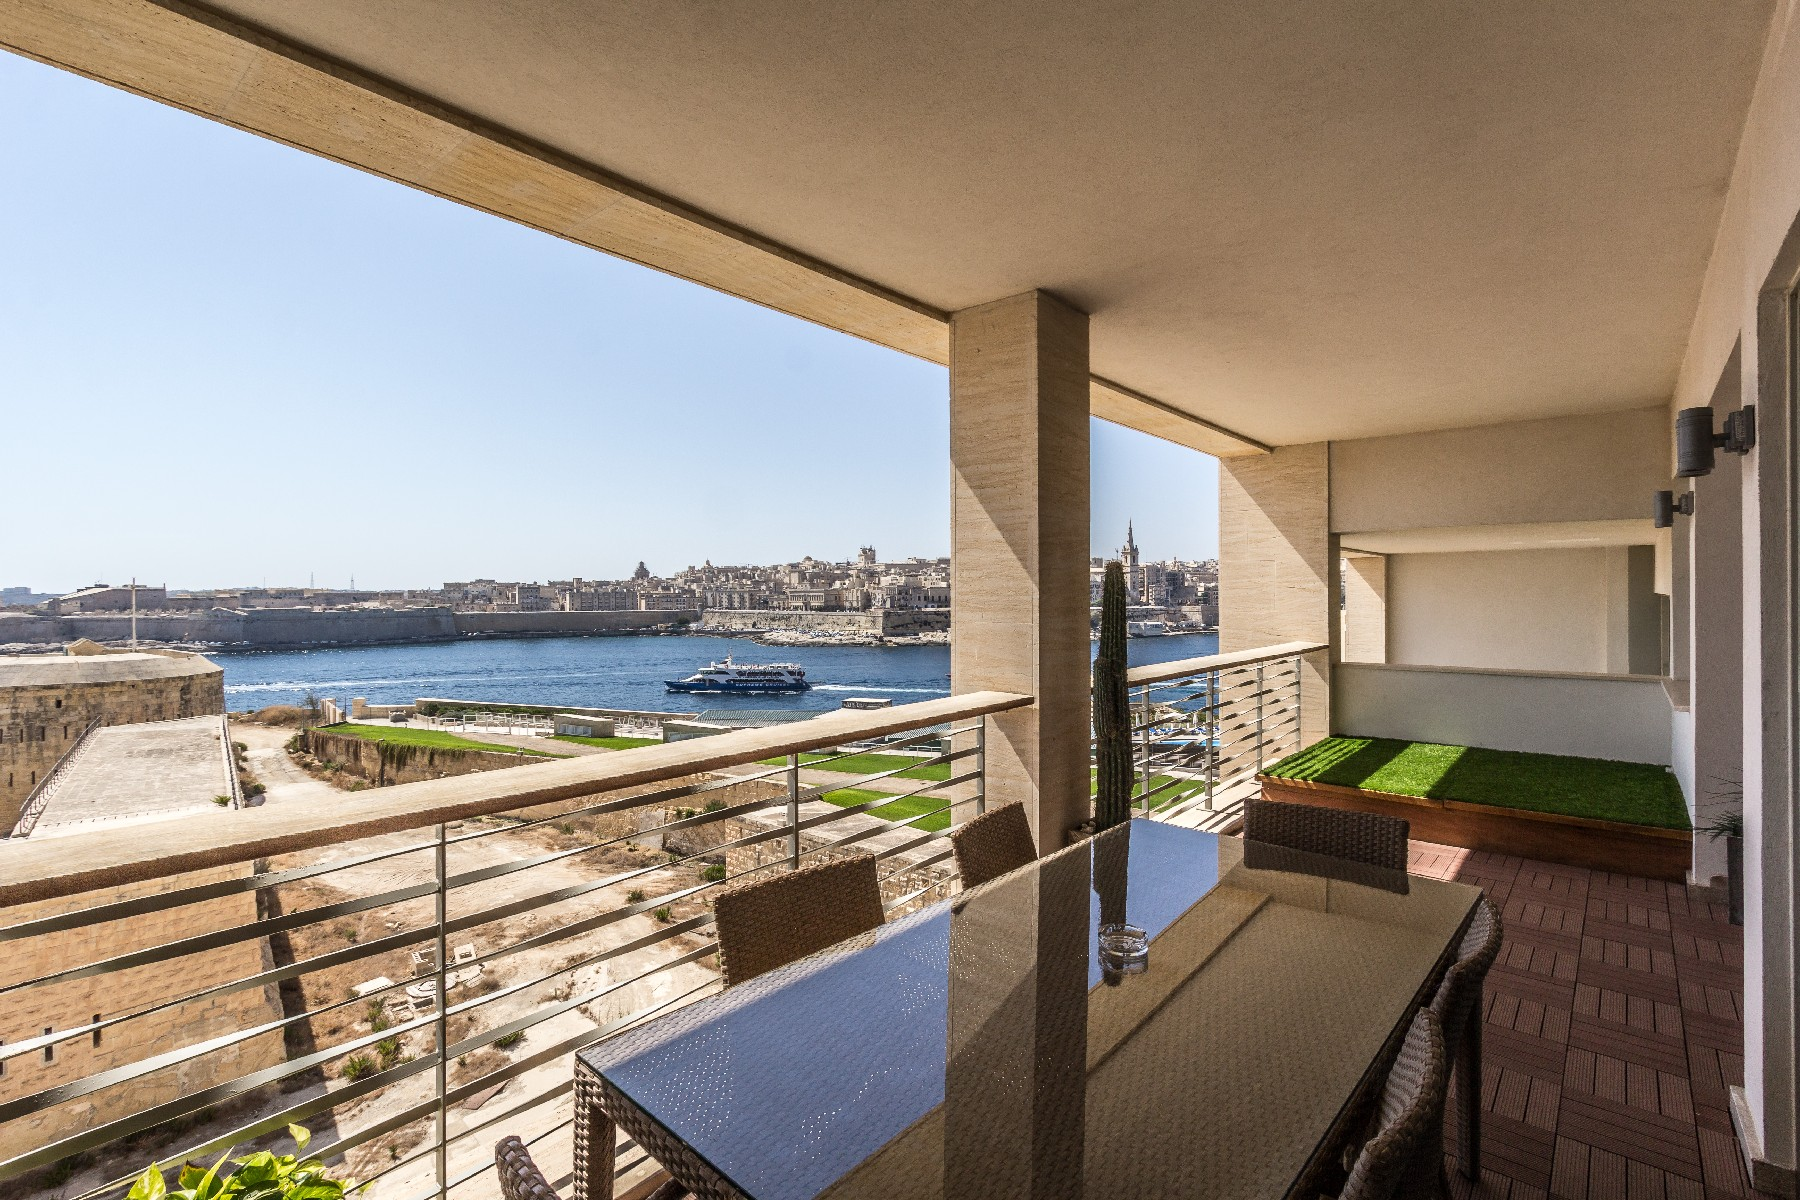 Apartment for Sale at Seafront Apartment Tigne Point, Sliema, Malta